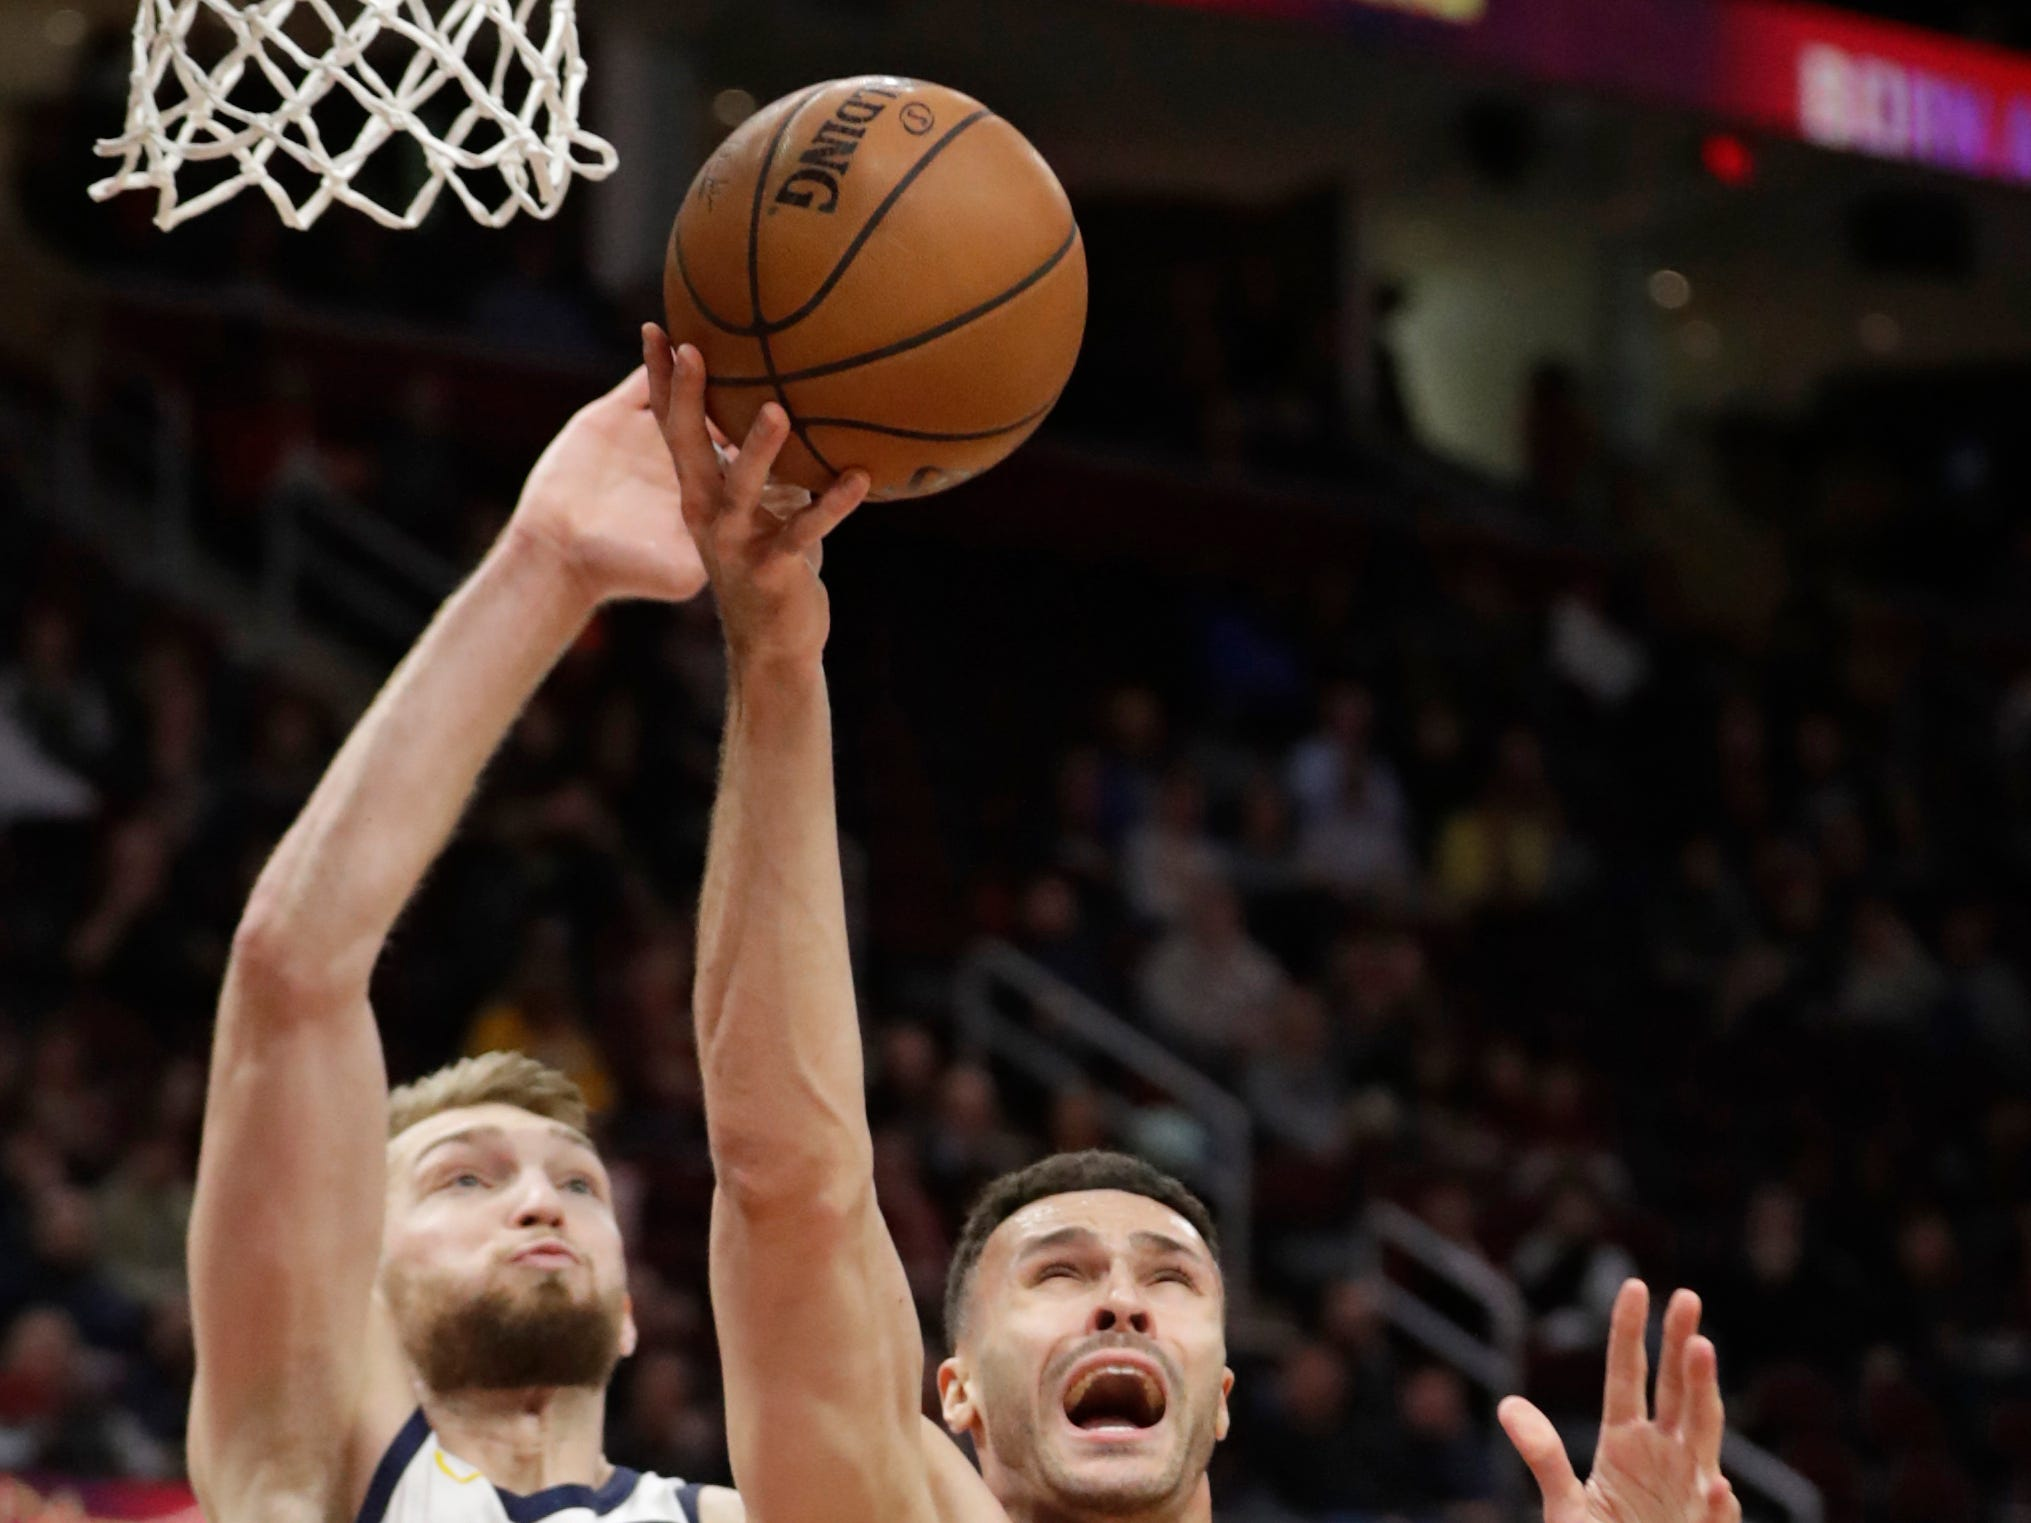 Cleveland Cavaliers' Larry Nance Jr. (22) is blocked by Indiana Pacers' Domantas Sabonis during the first half of an NBA basketball game Tuesday, Jan. 8, 2019, in Cleveland.